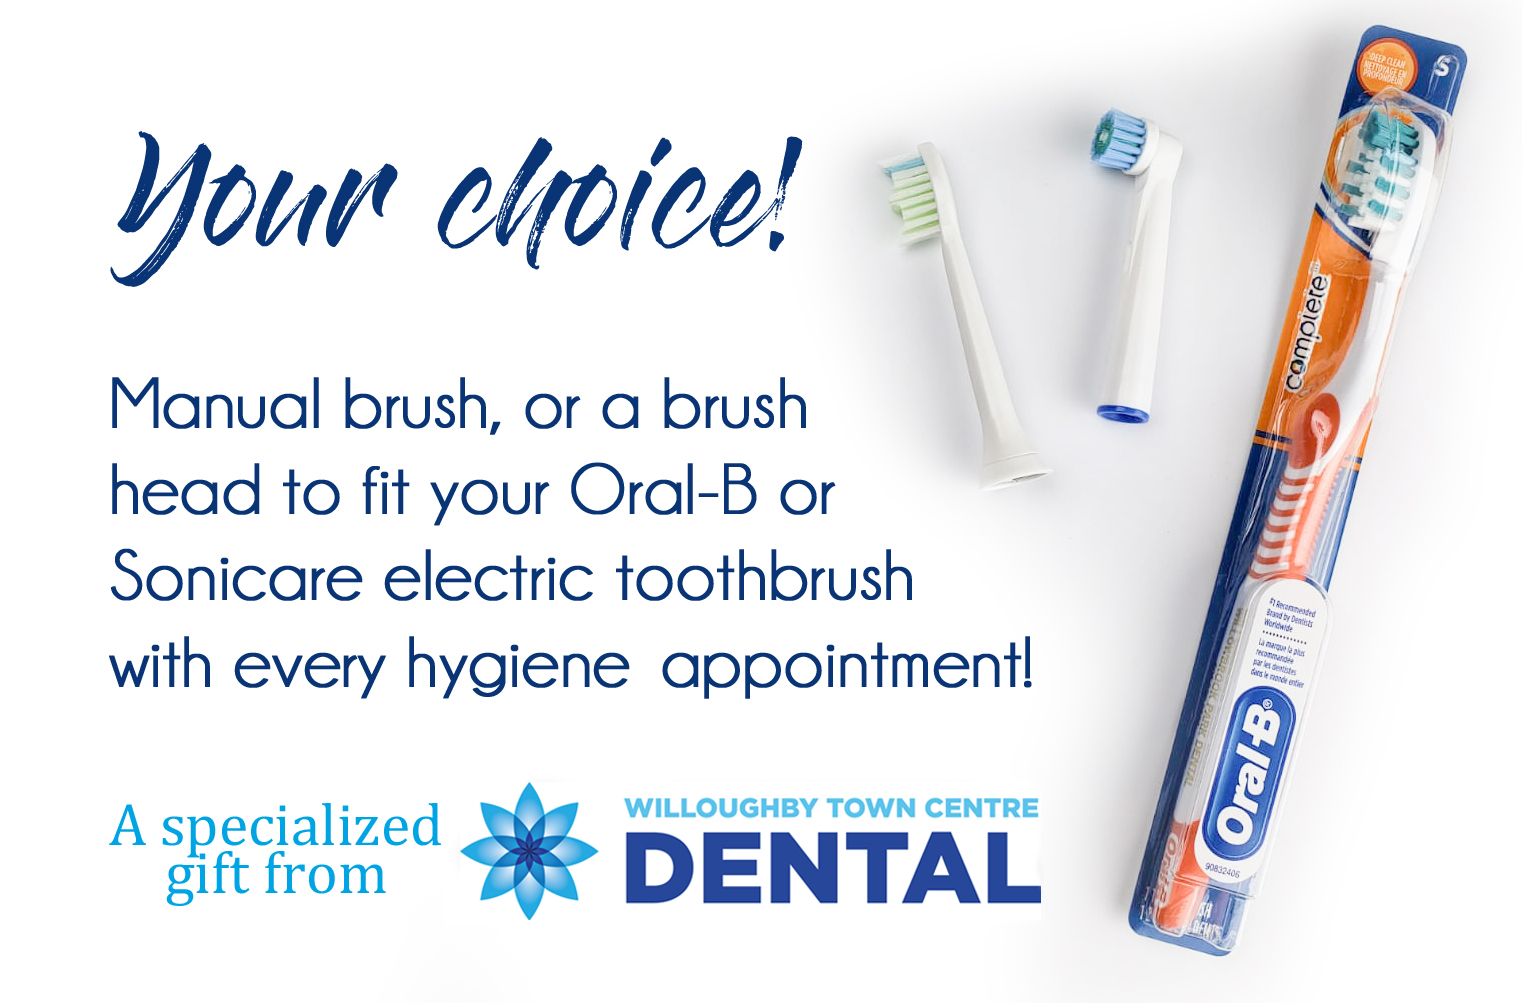 Willoughby Town Centre Dental Toothbrush options